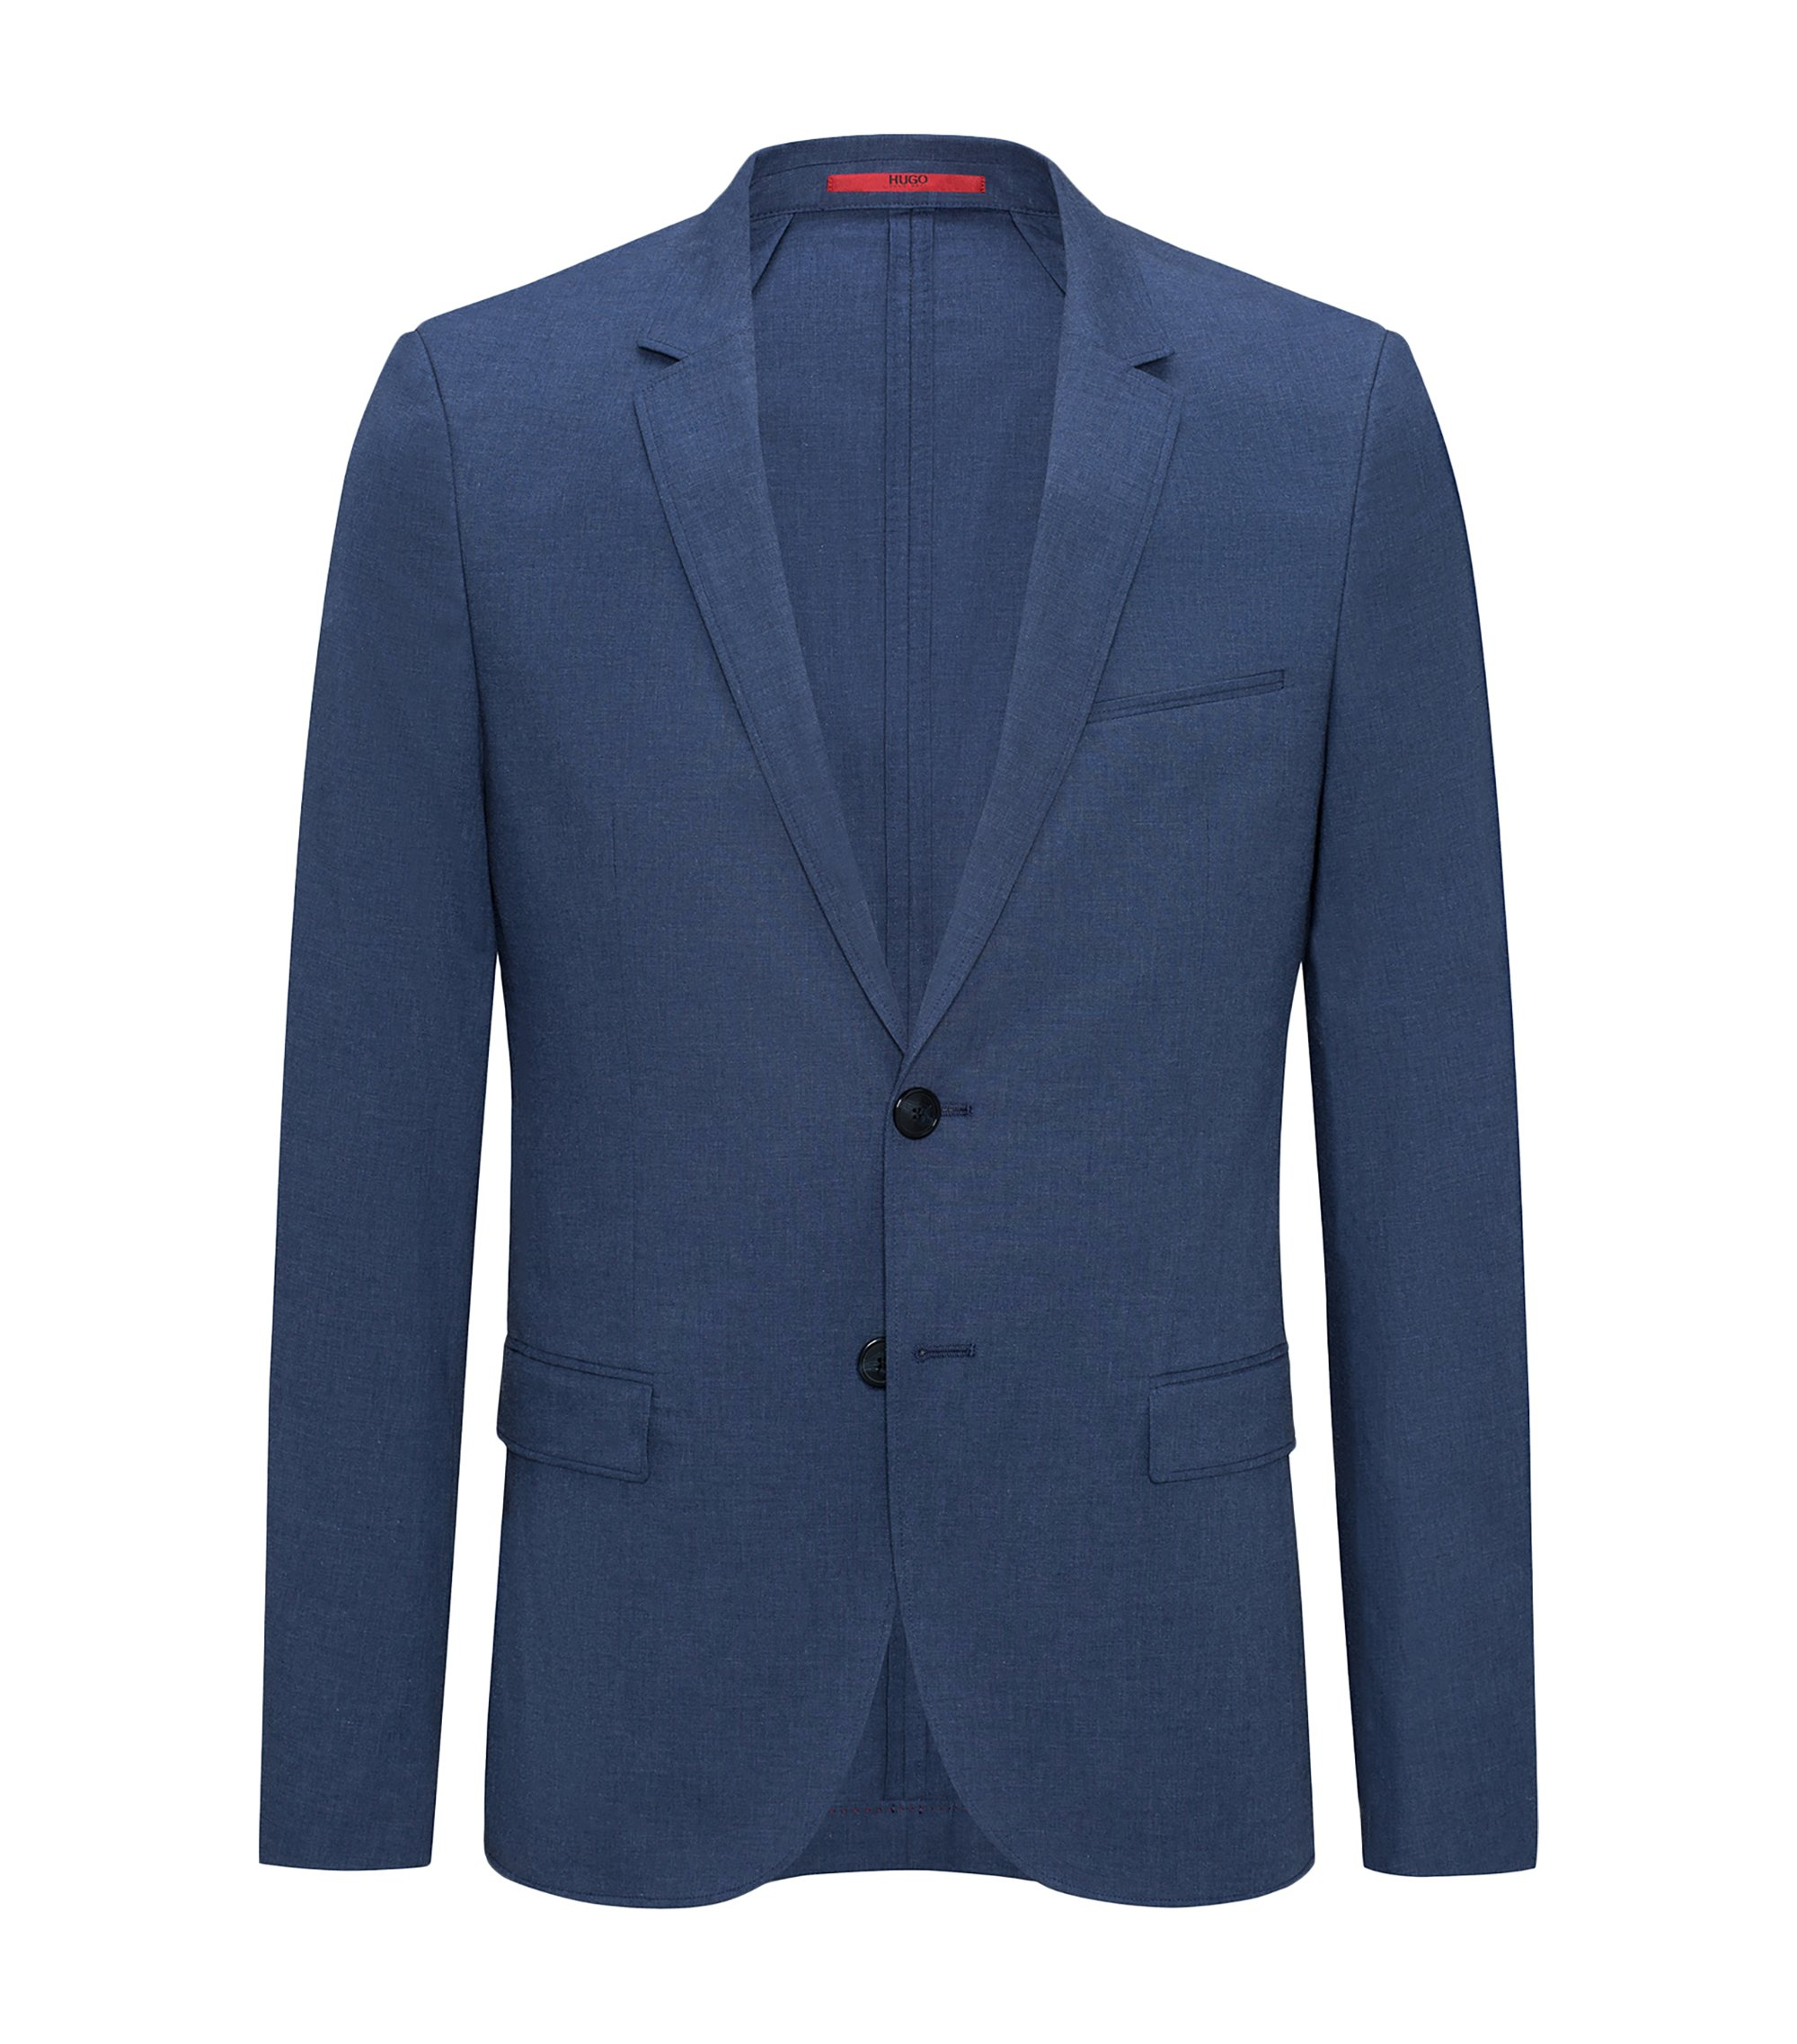 Veste Extra Slim Fit en coton stretch chiné, Bleu foncé